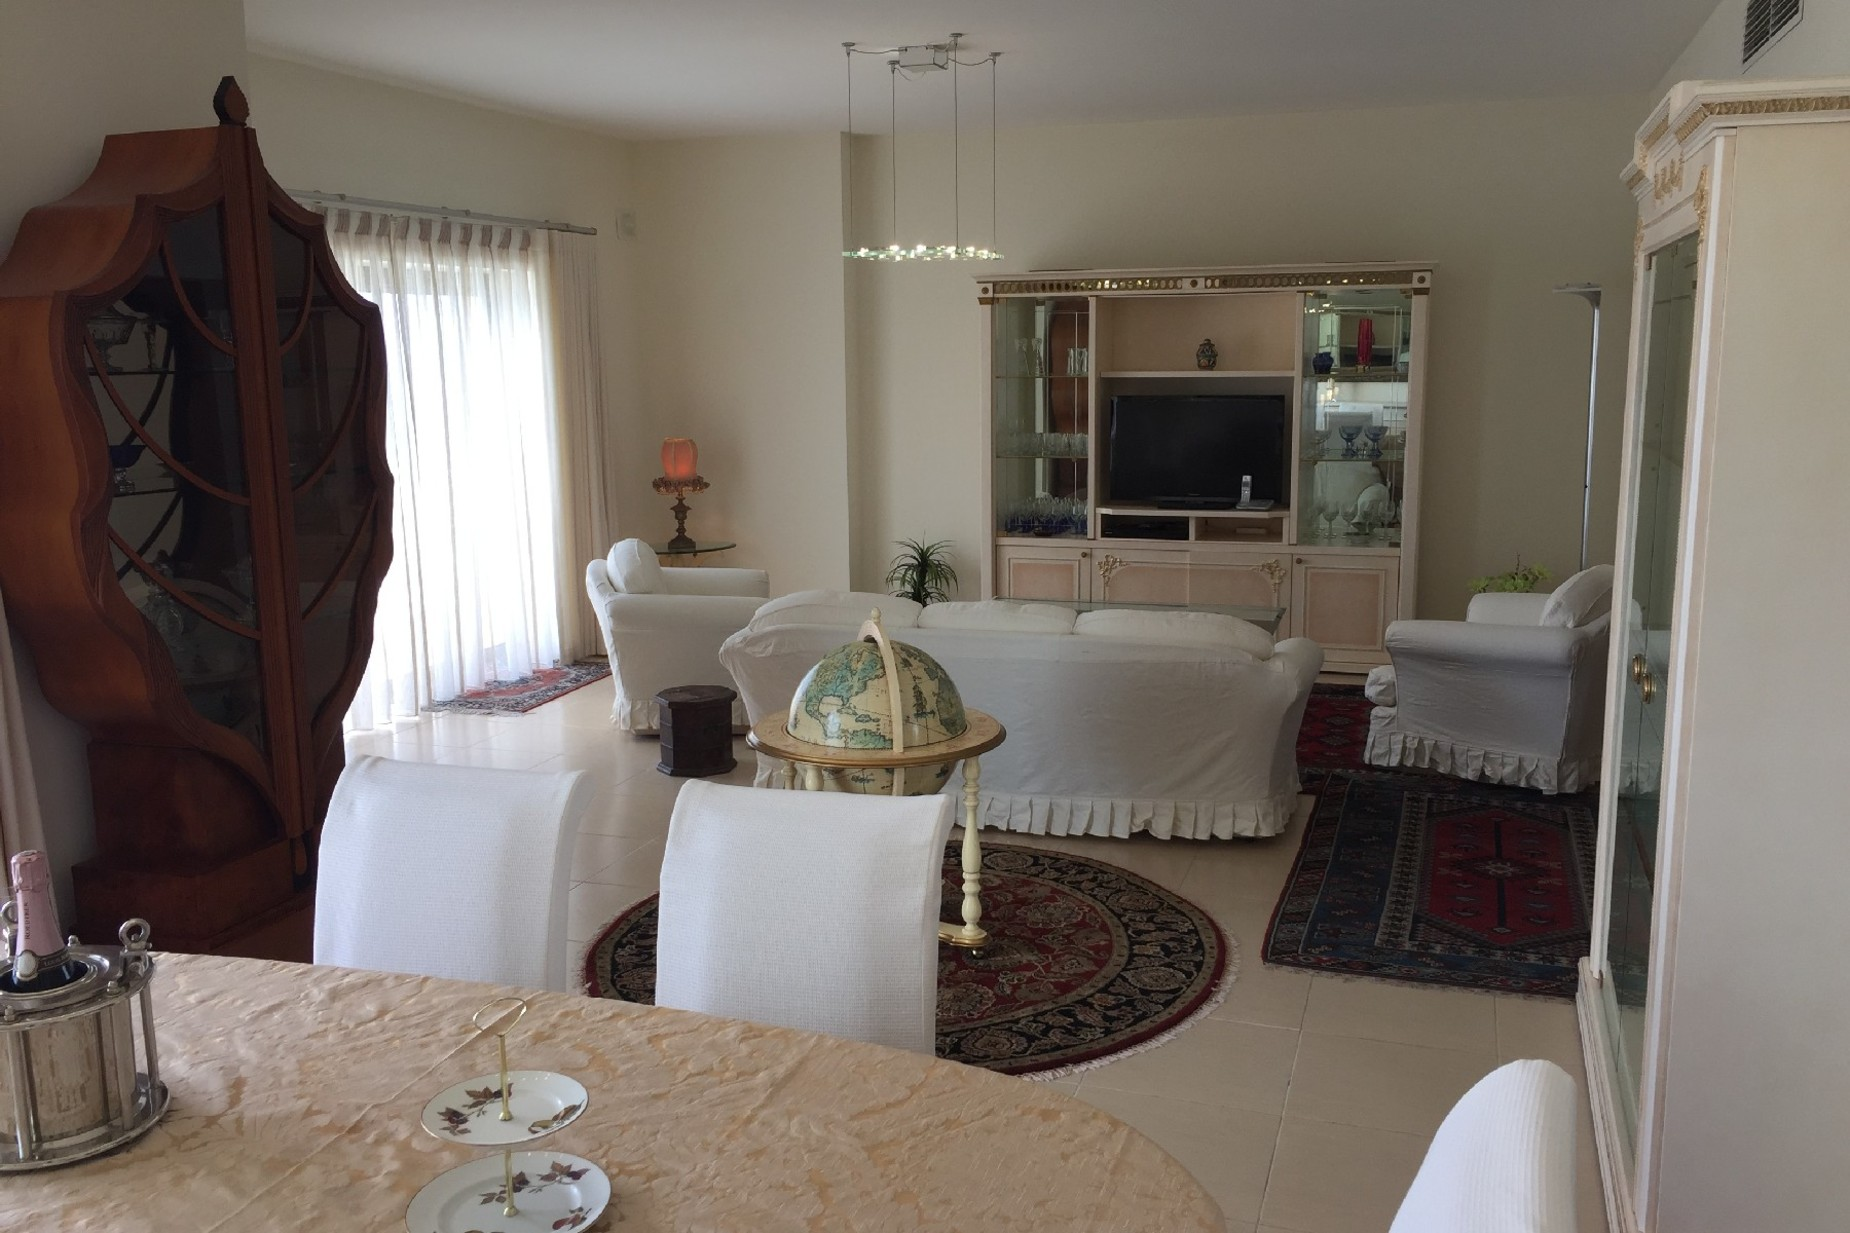 3 bed Apartment For Sale in Mellieha, Mellieha - thumb 4